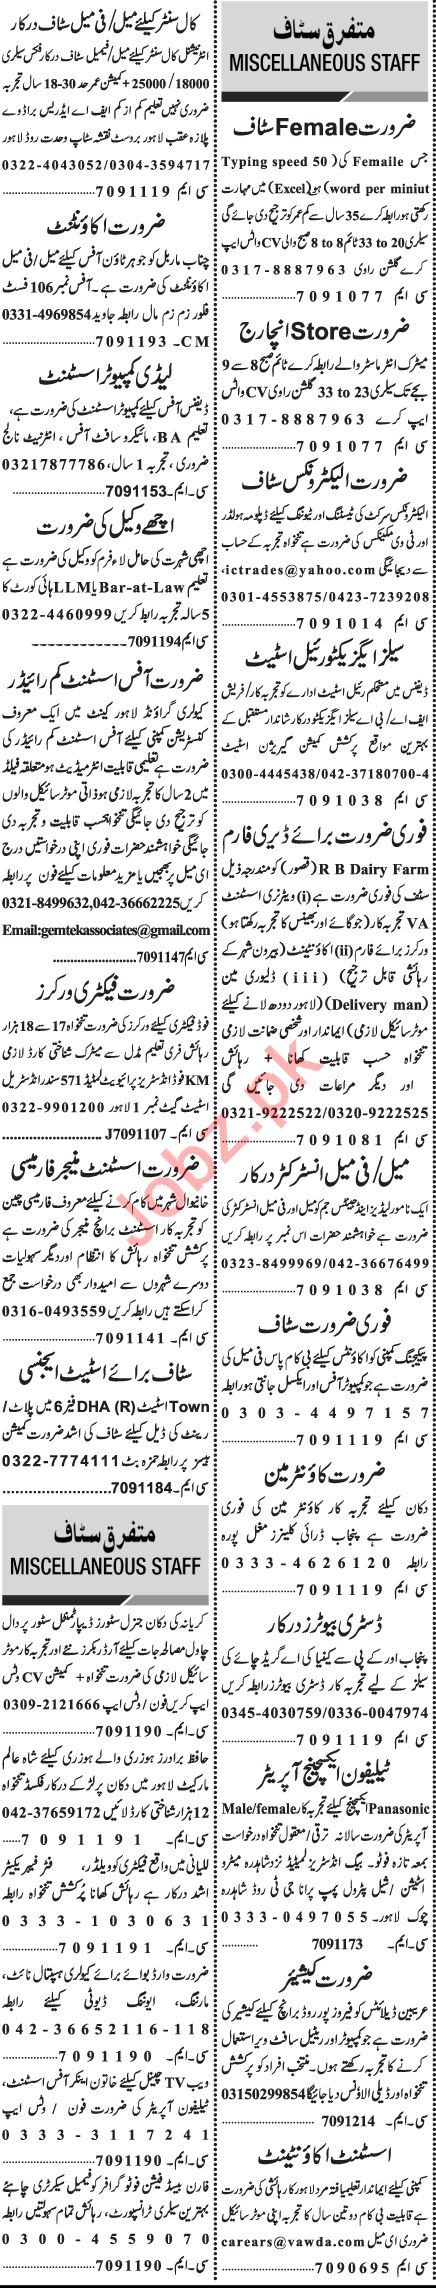 Jang Sunday Classified Ads 29 Nov 2020 for General Staff